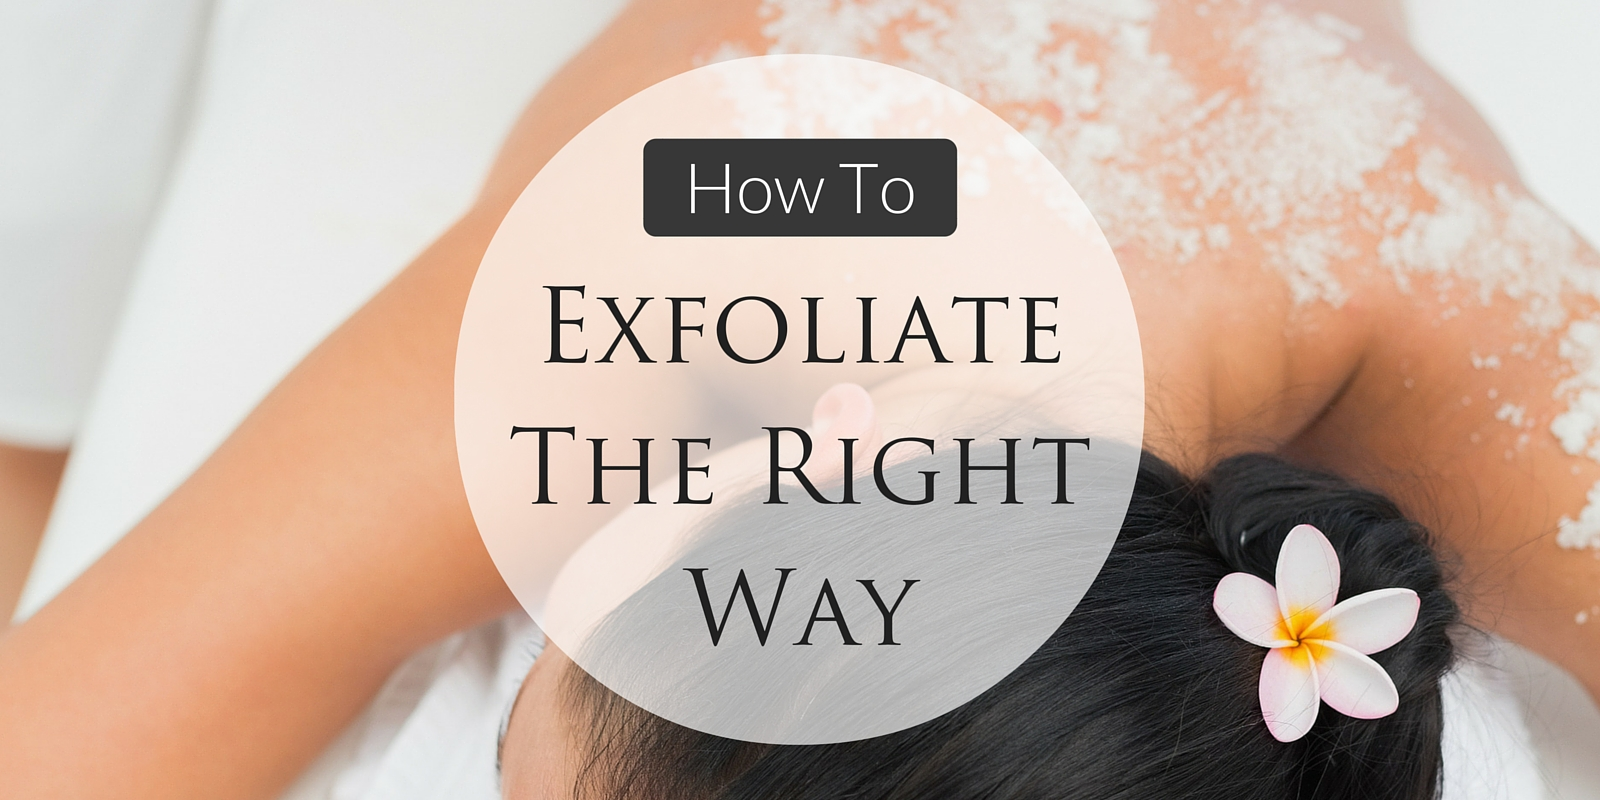 How To Exfoliate The Right Way